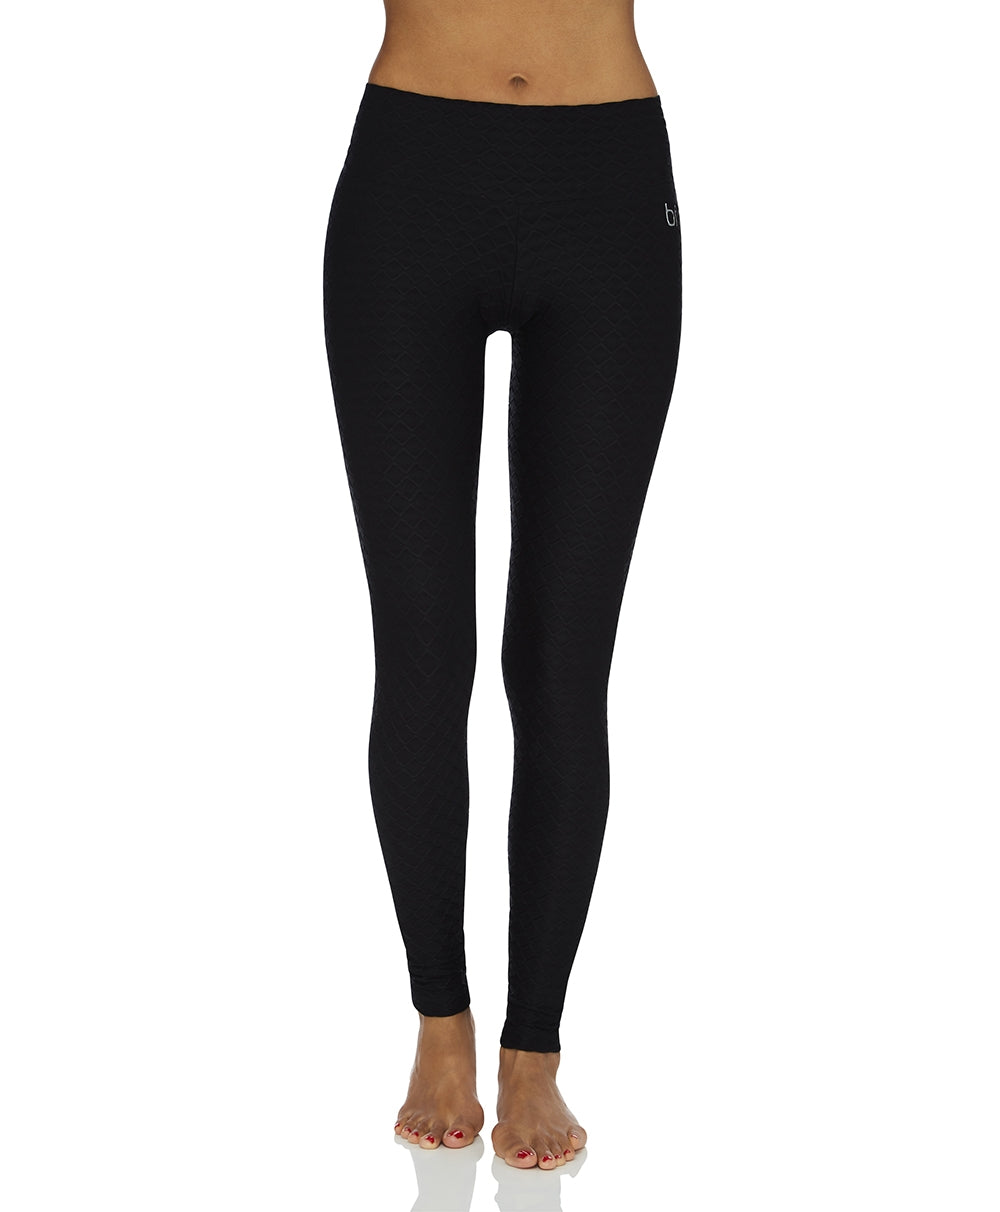 Legging Full-Length Wallpaper Black